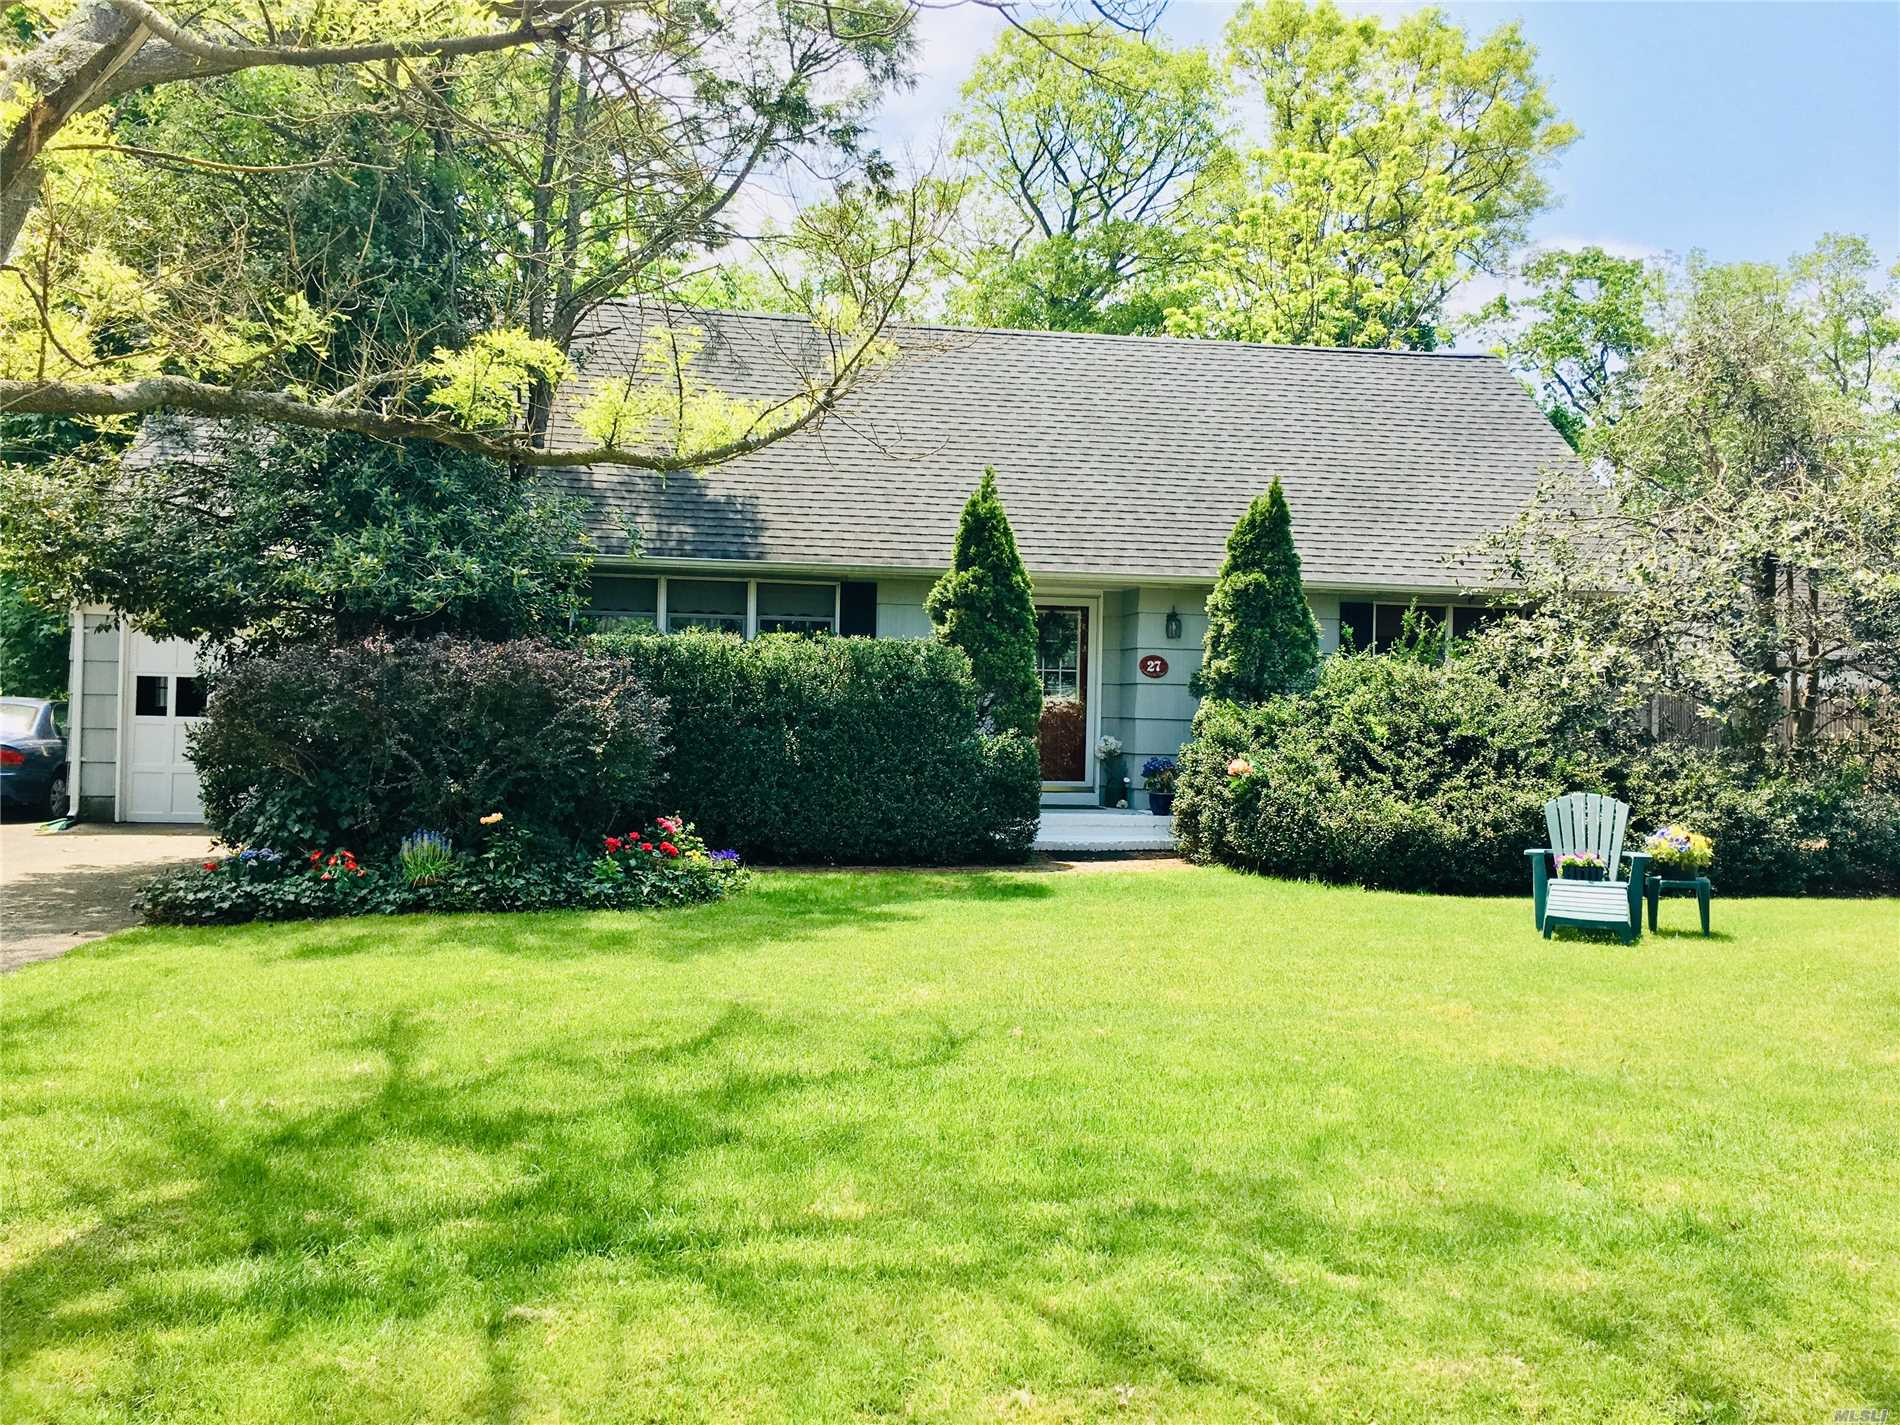 Quintessential Northport Village Home on a Lovely Cul de Sac. Updated Cape with Unlimited Potential. Conveniently Located near Restaurants, Beaches, Parks, Gazebo, Dock and everything else Northport Village has to offer! Just 1 block away from elementary school & playground. Private Back Yard and much more.